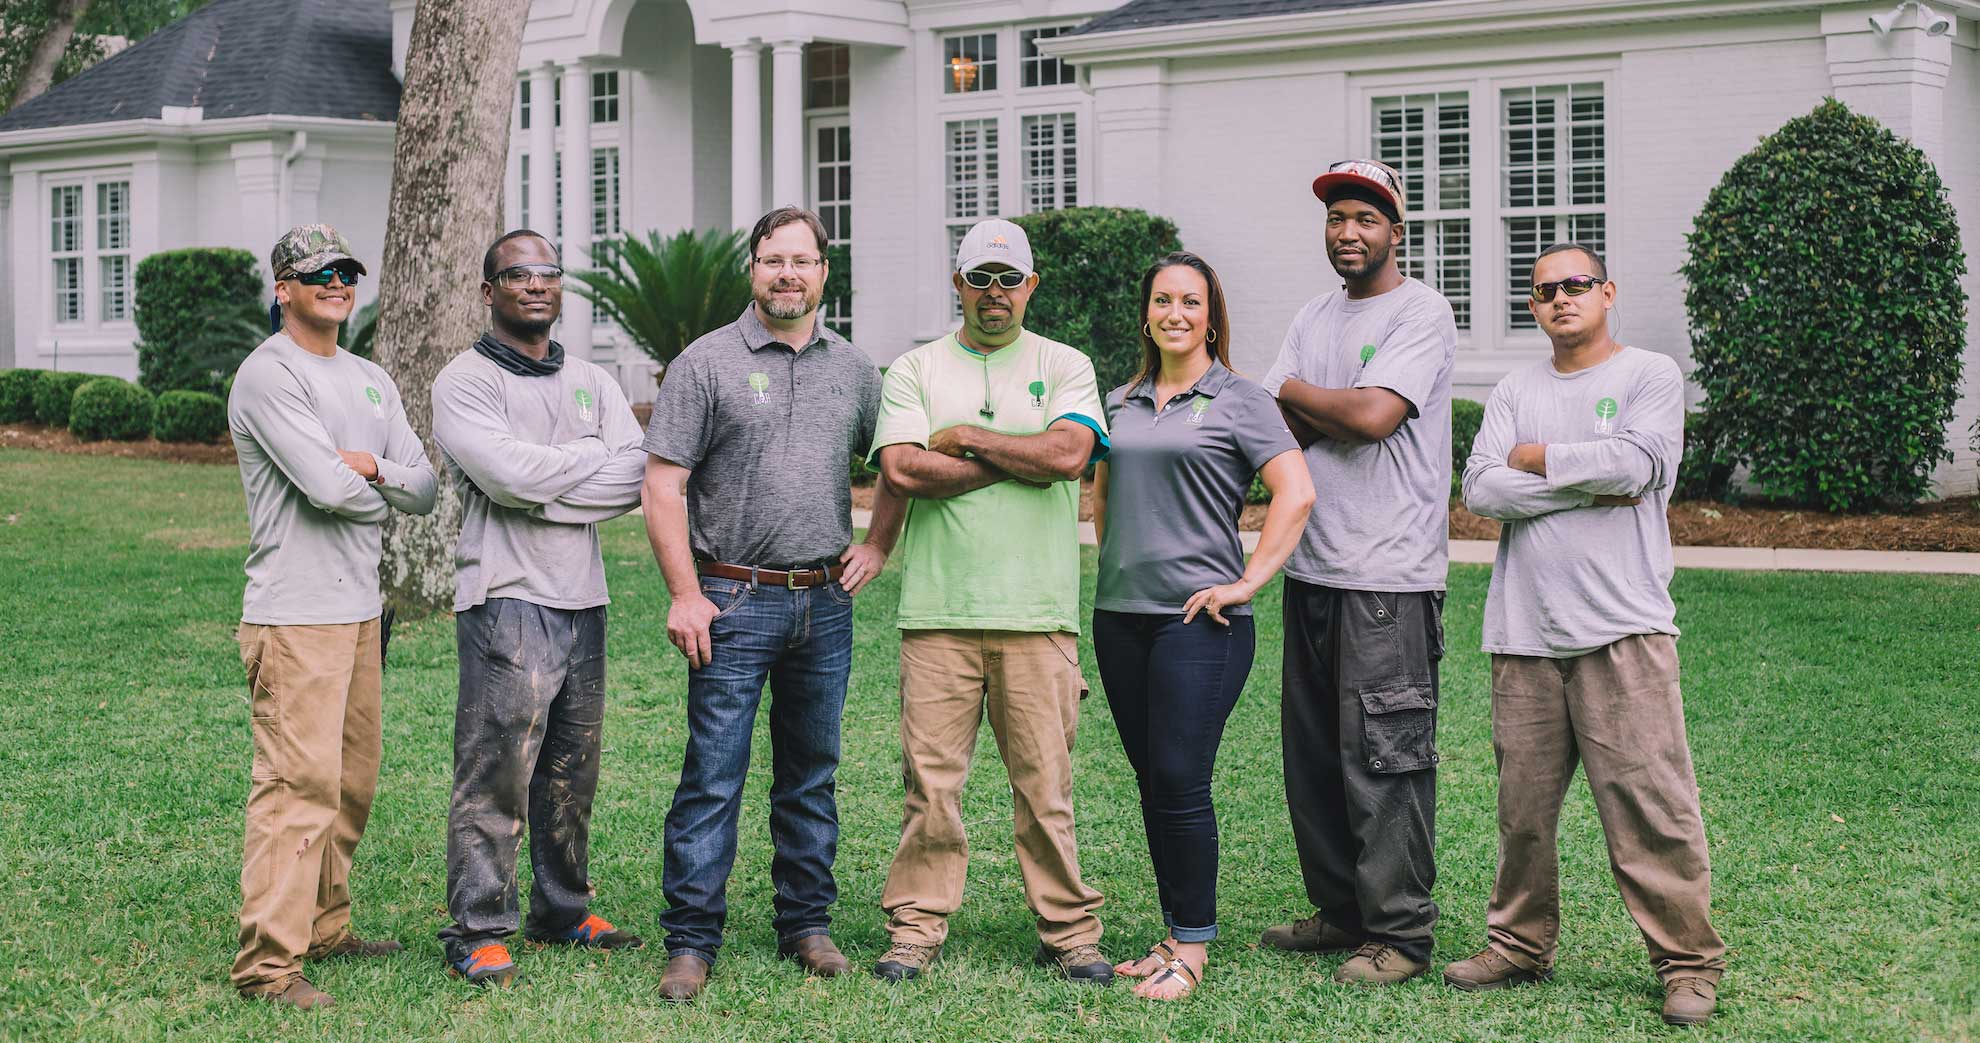 And a landscape team photo landscaping lawn care tallahasee fl jpg